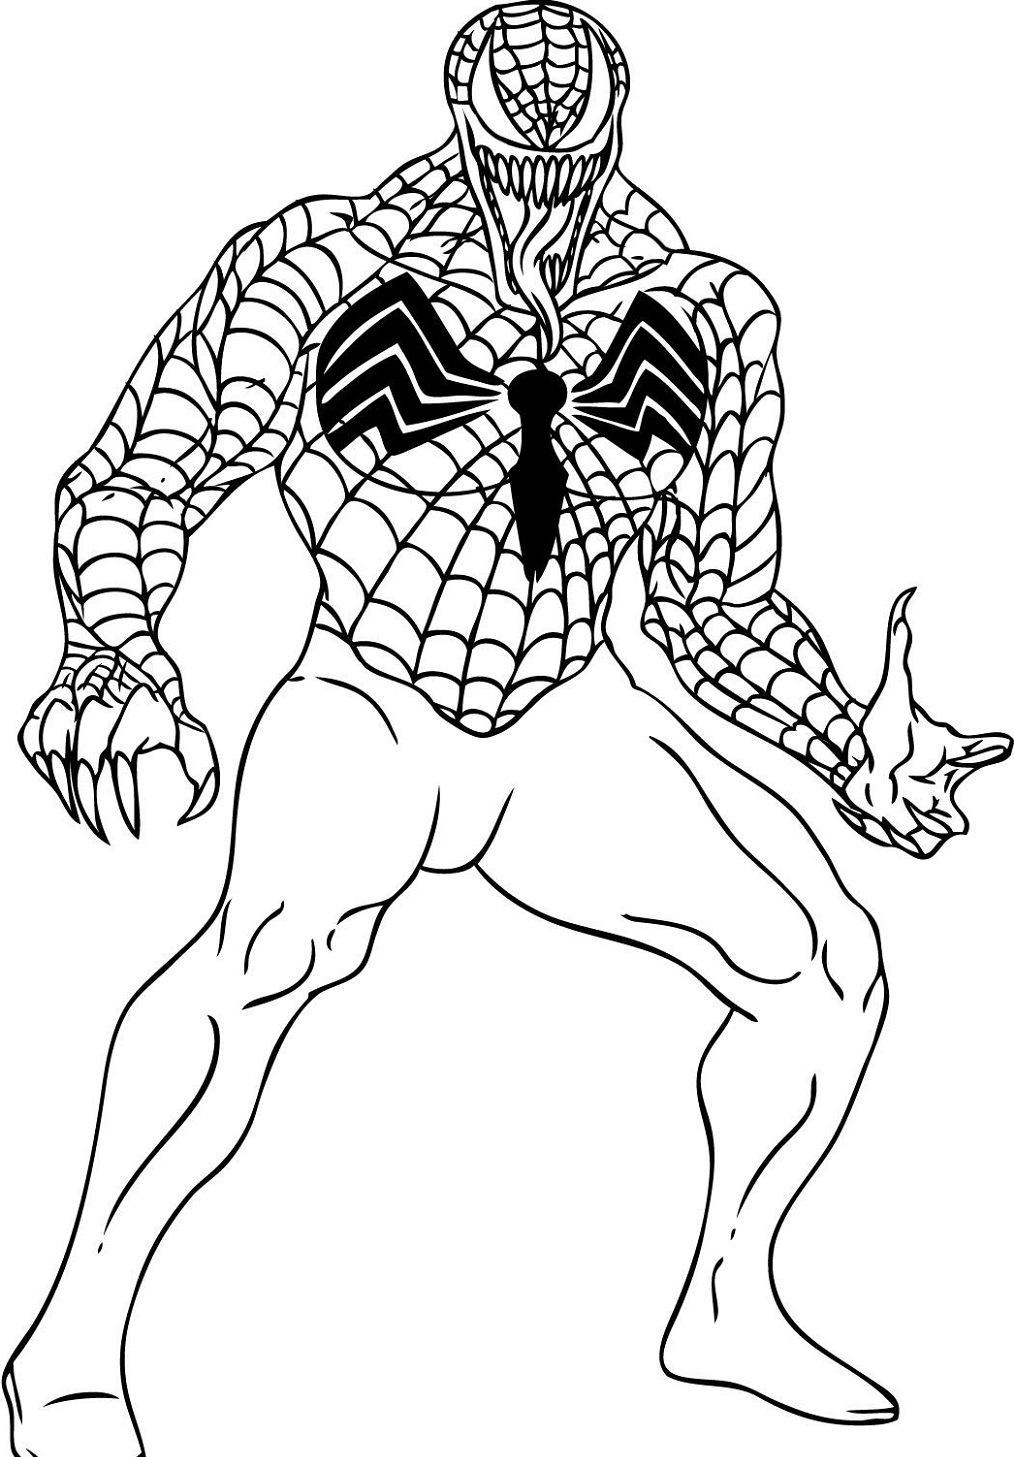 coloring pictures of spiderman spiderman homecoming drawing at getdrawings free download pictures of spiderman coloring